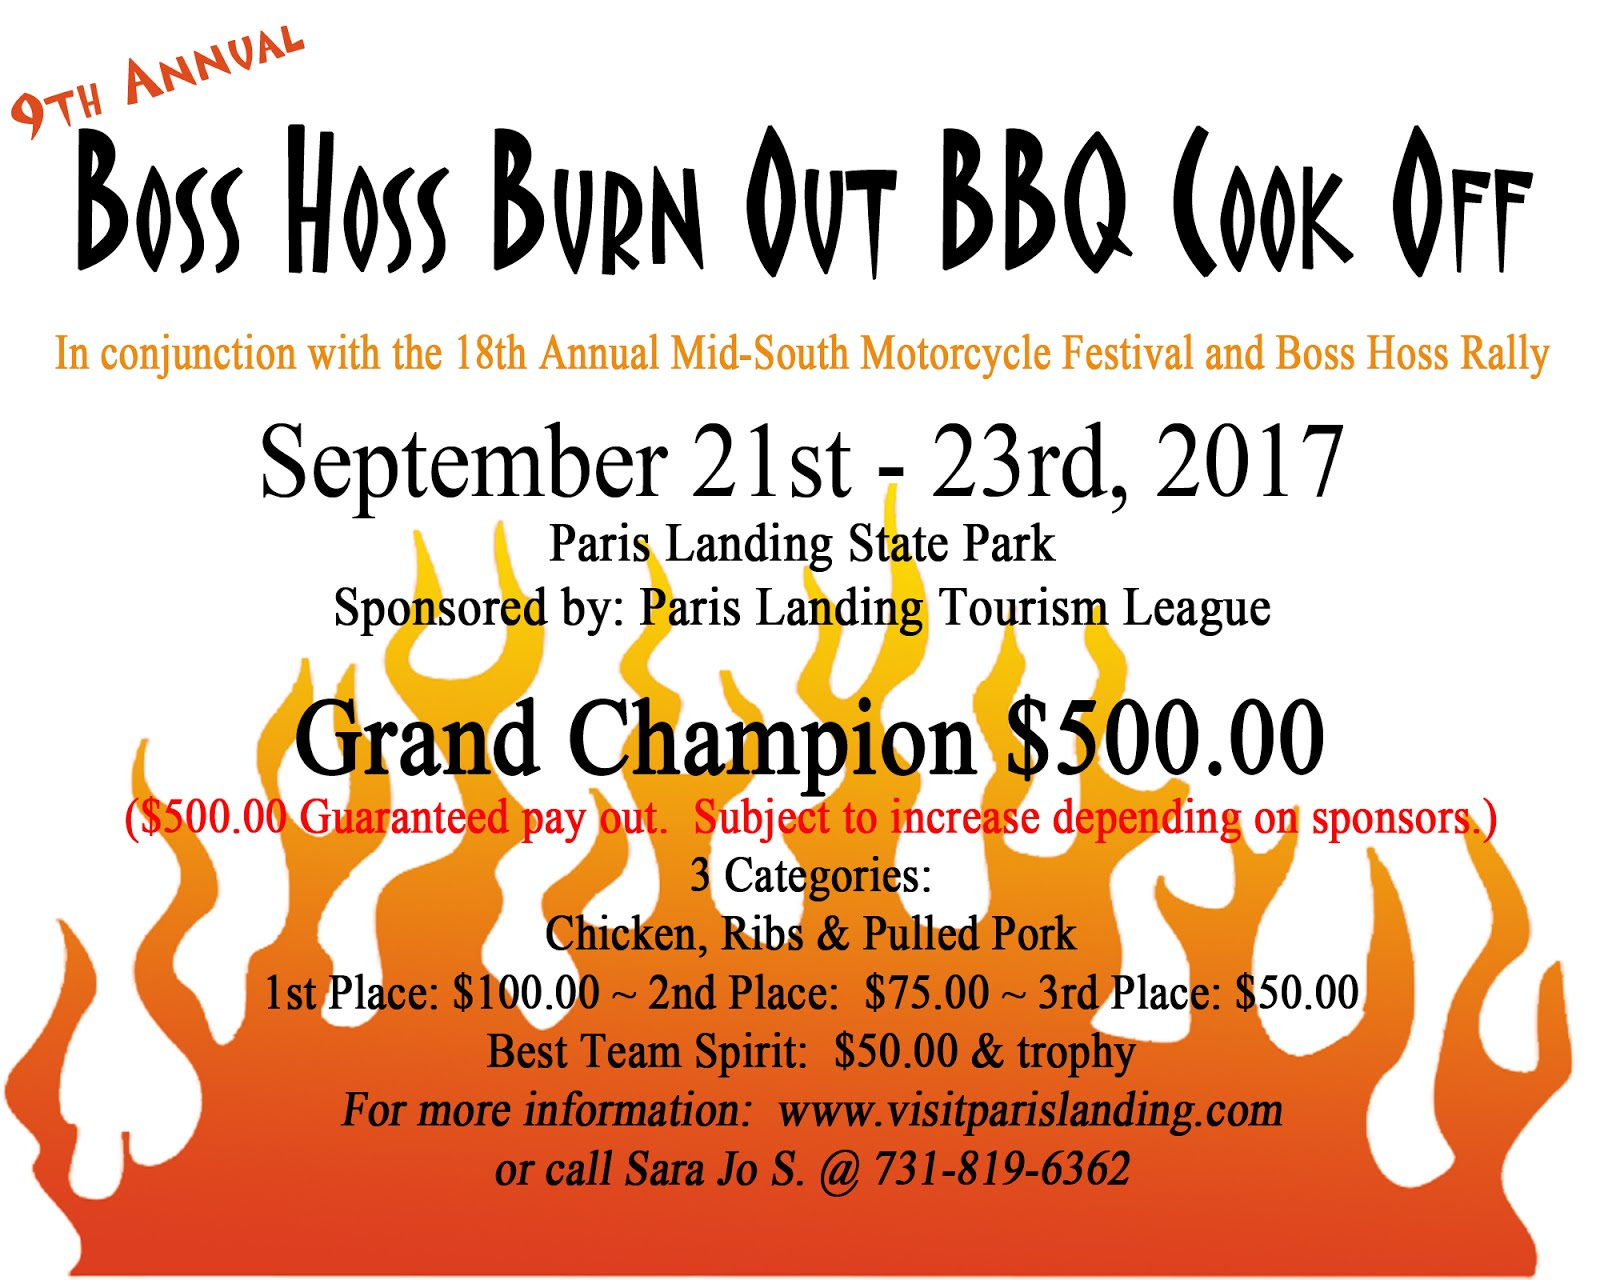 Boss Hoss Burn Out BBQ Cook Off